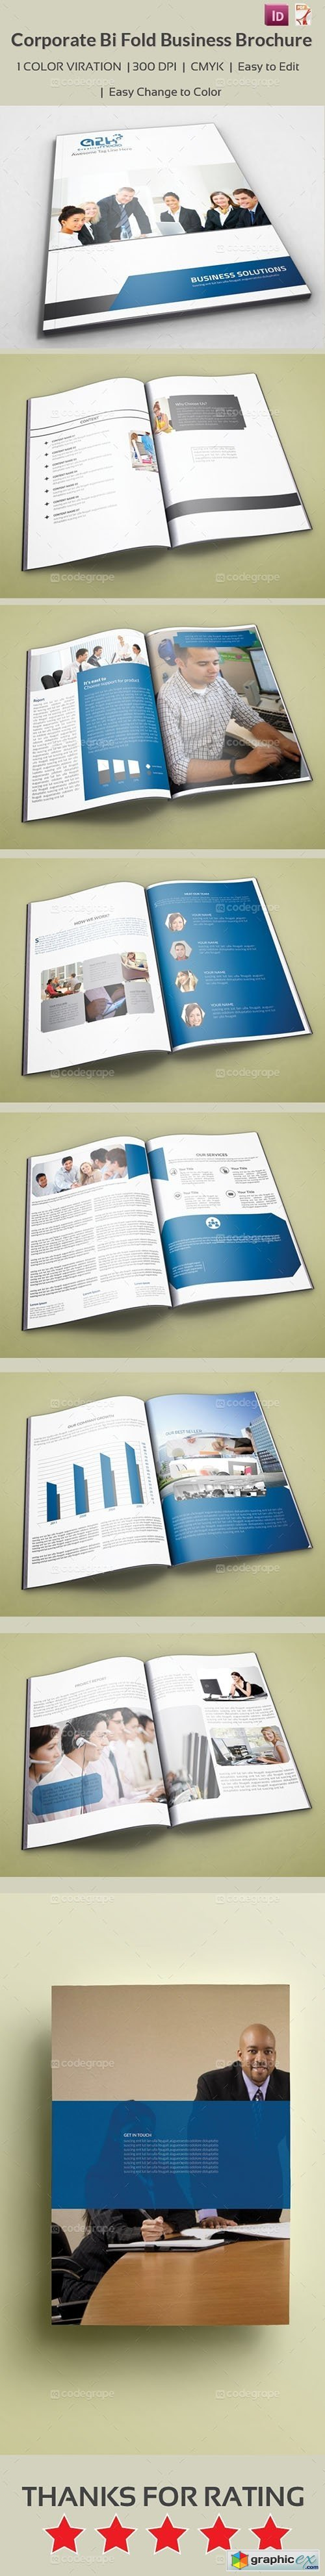 CodeGrape Corporate Bi Fold Business Brochure 5271